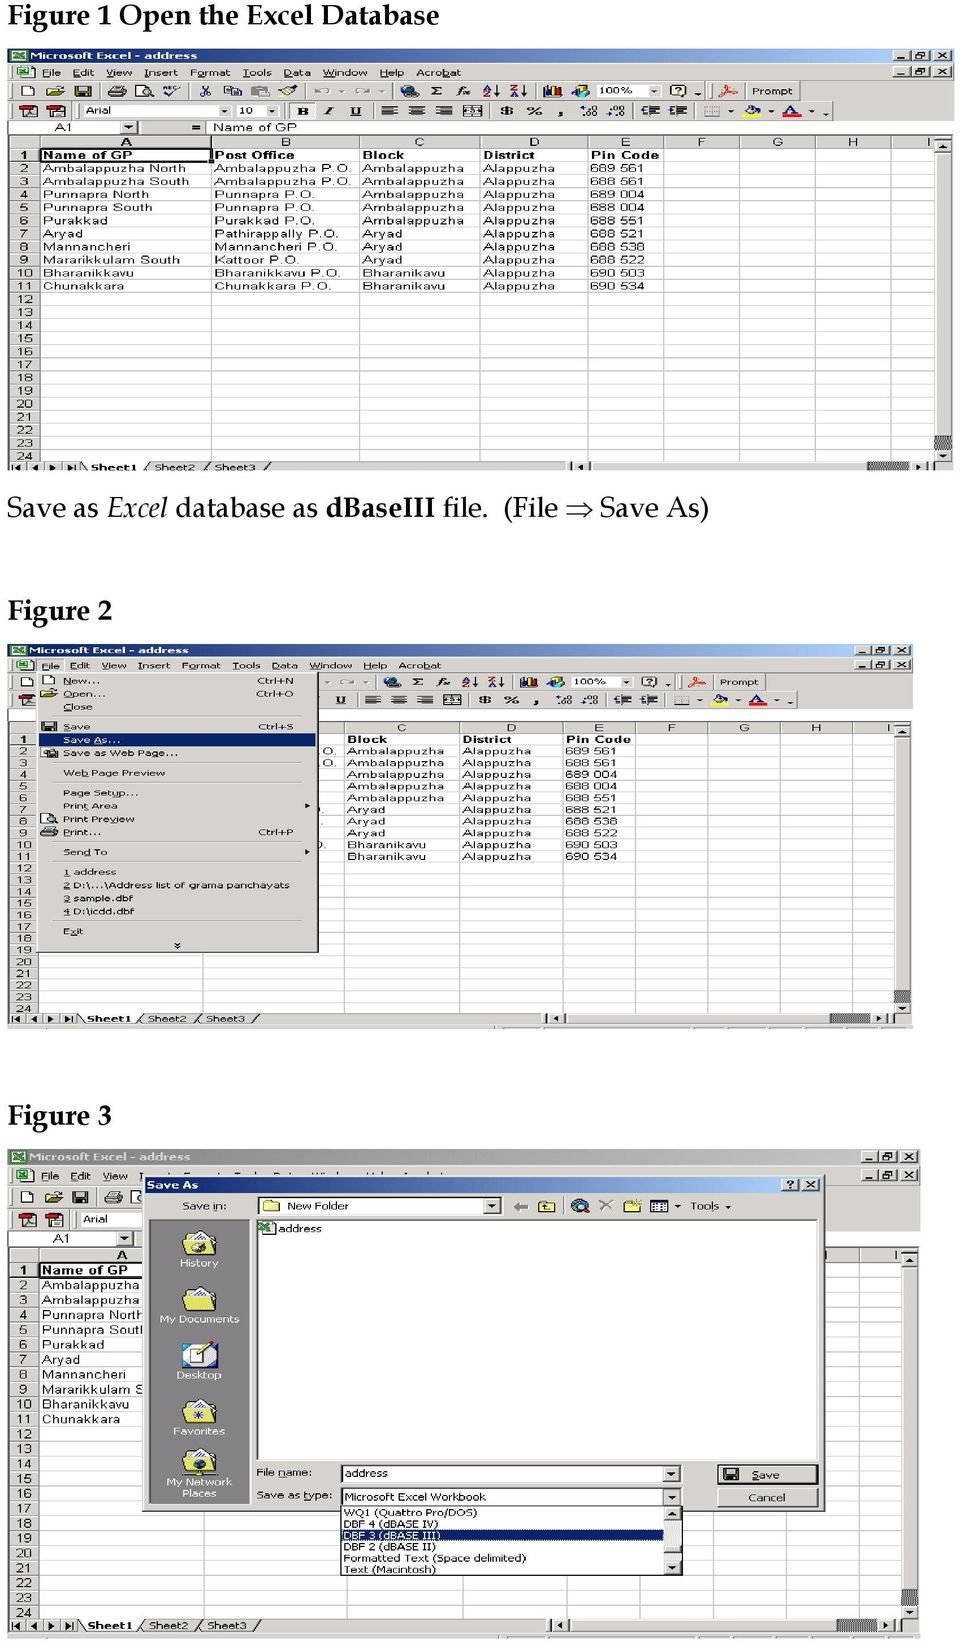 the sample excel database used here to show the conversion from